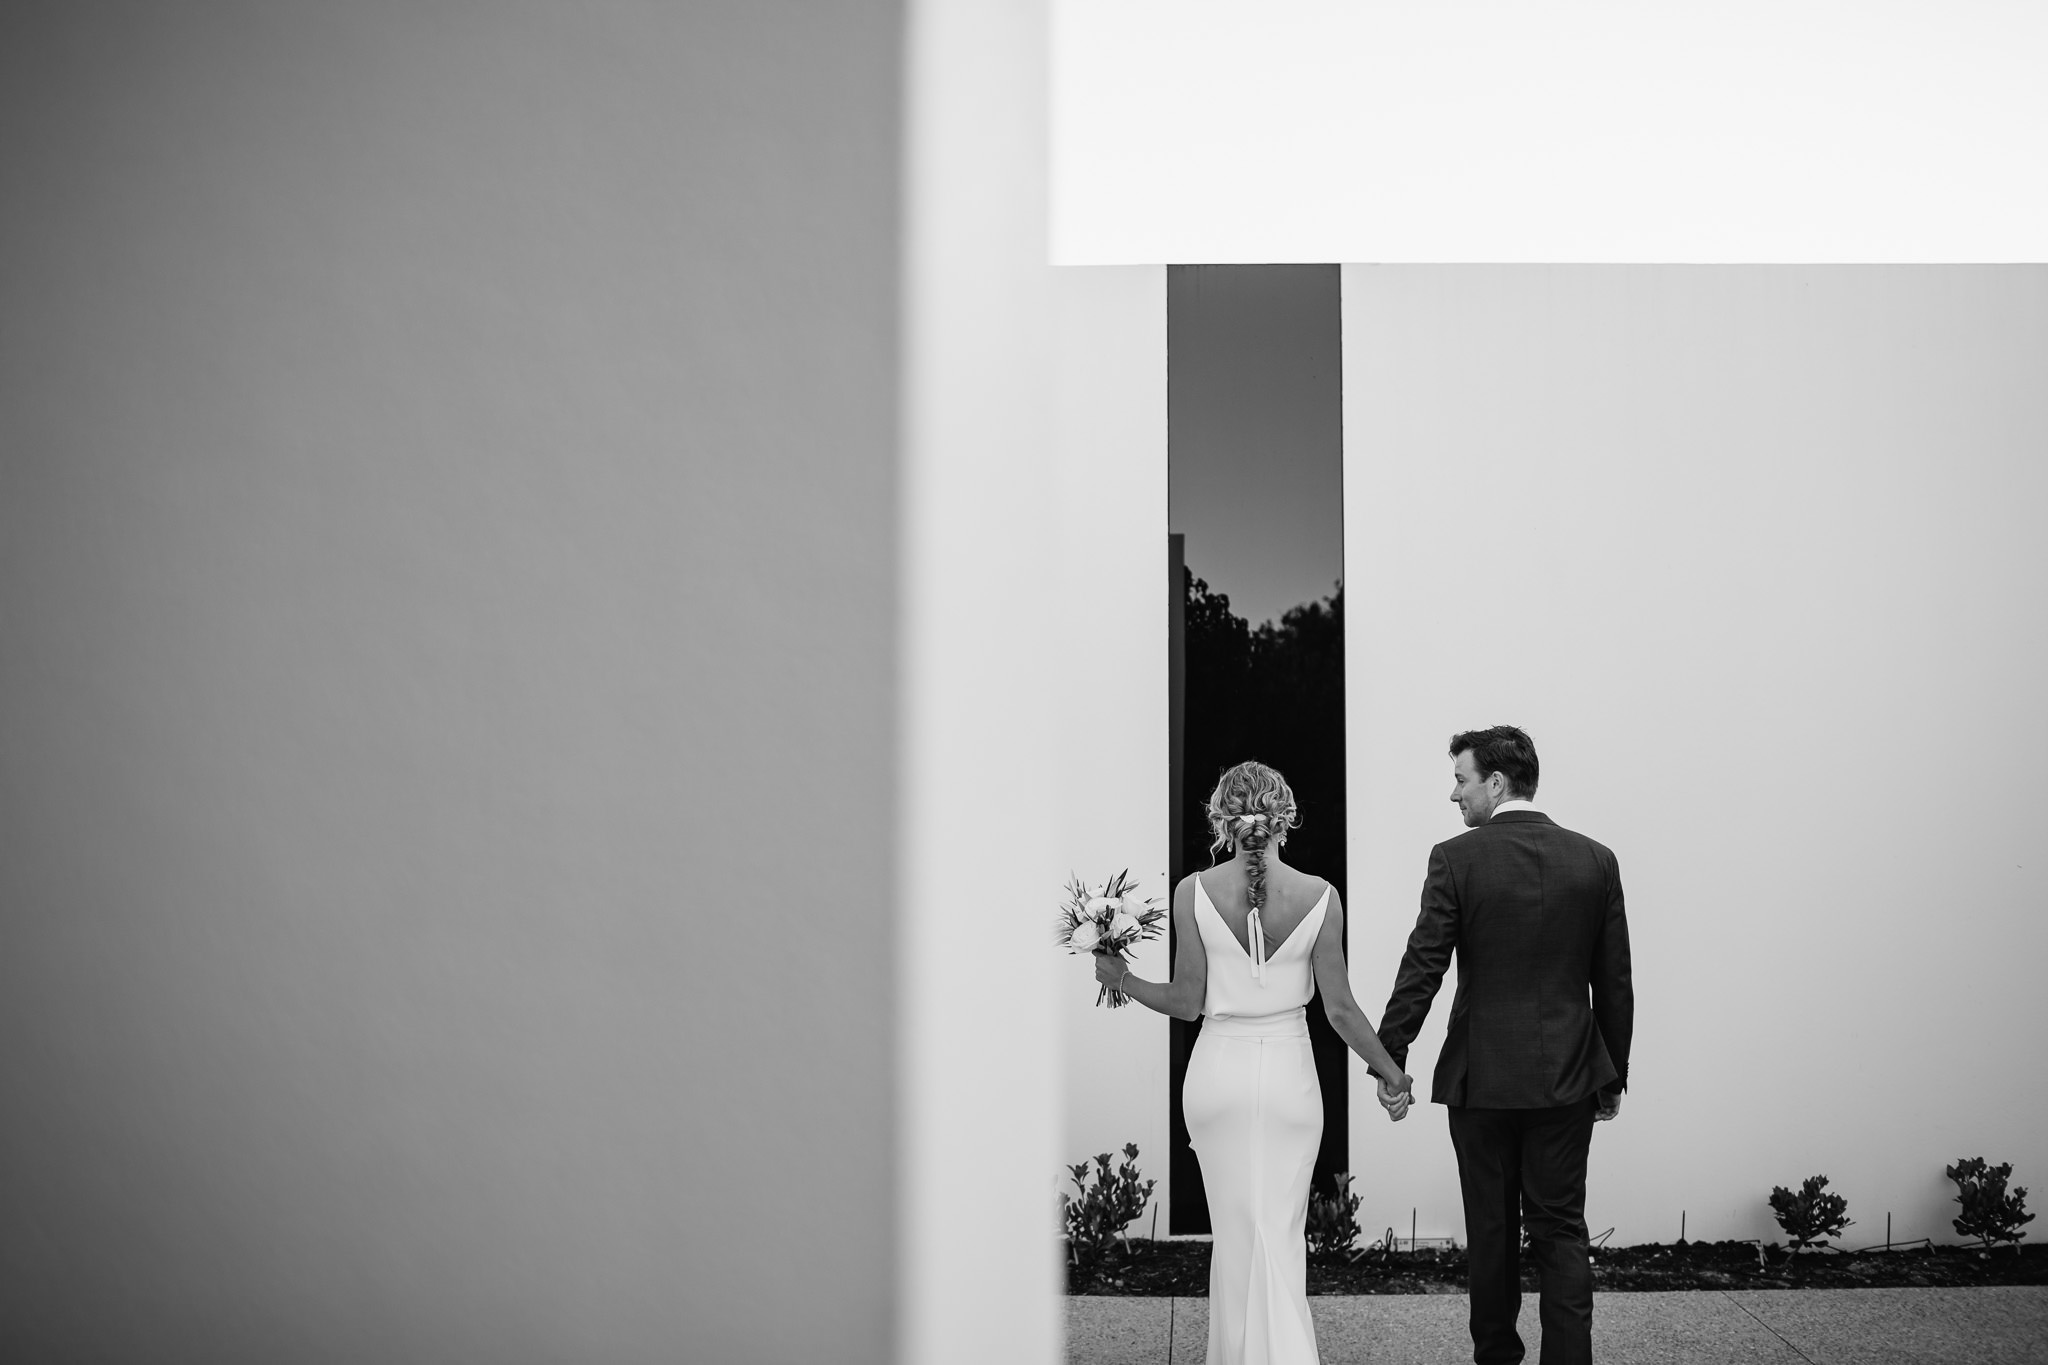 black and white photo of bride and groom outside modern architecture home with minimalist design